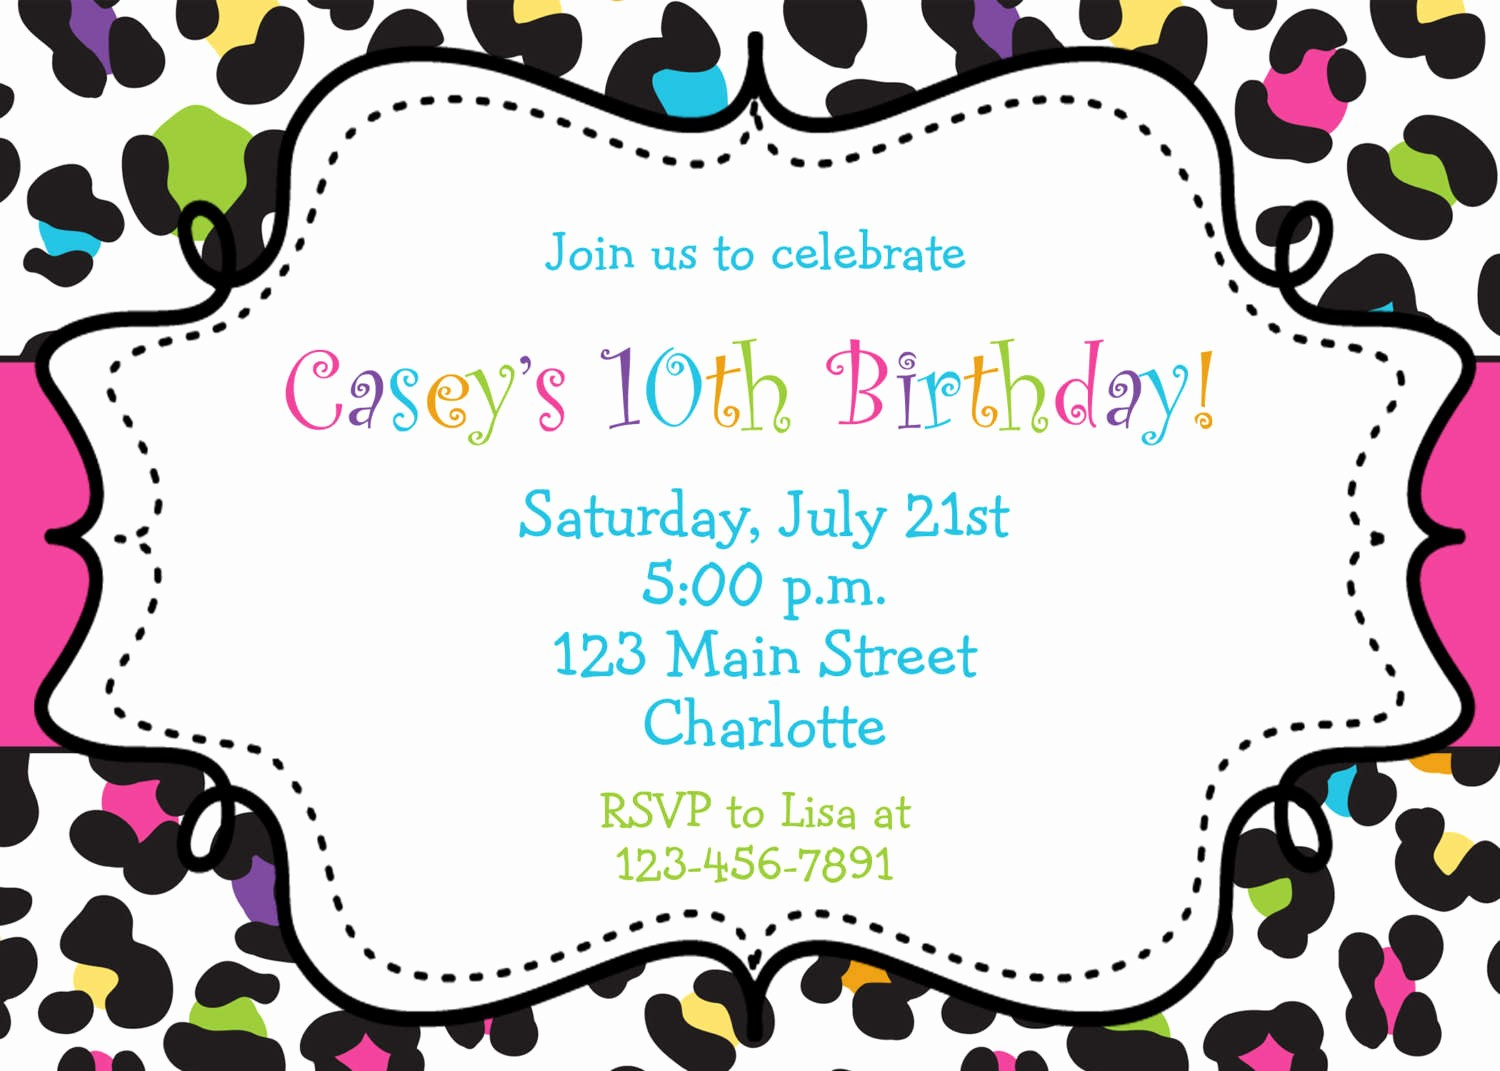 Free Printable Party Invitations Templates Inspirational Birthday Invitations Browsing Exclusive Animal Print themed